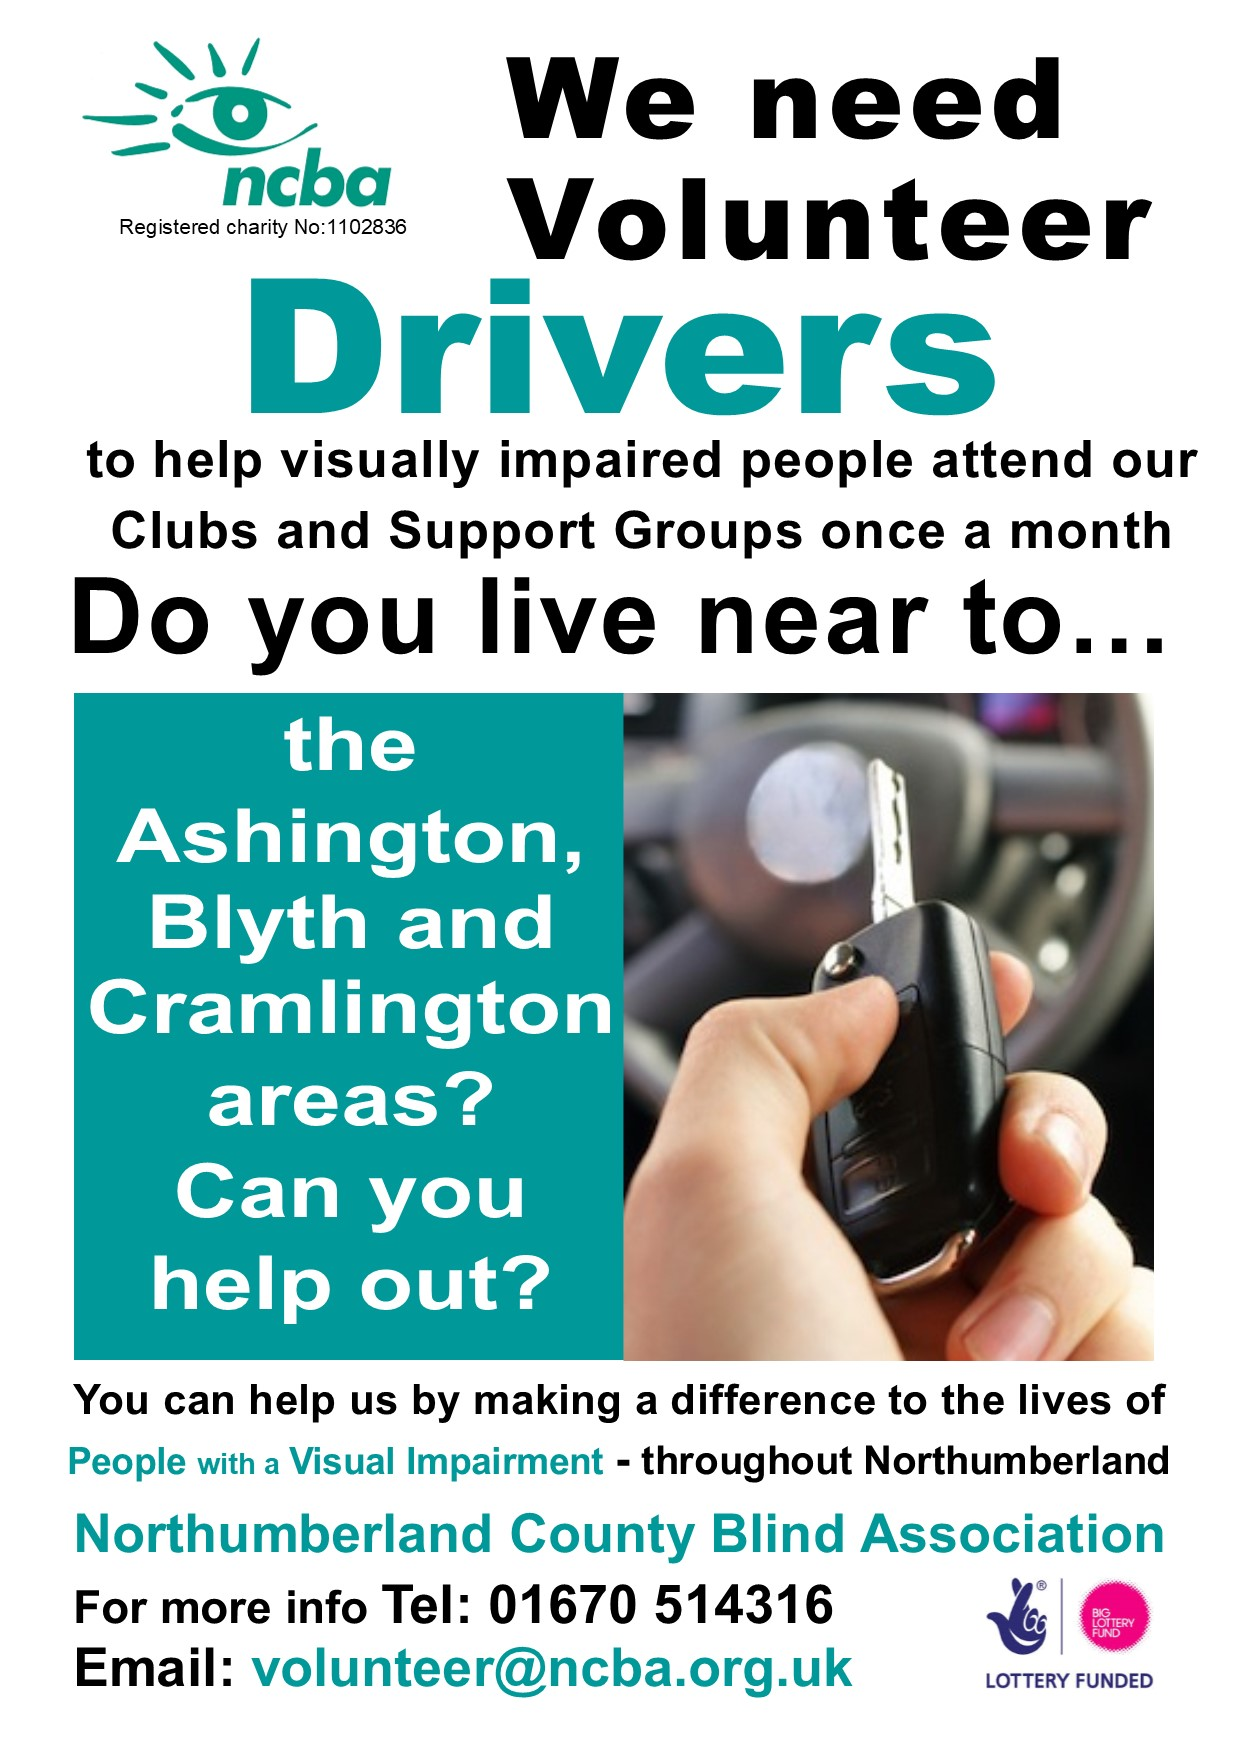 Volunteers Drivers Needed Once a Month!